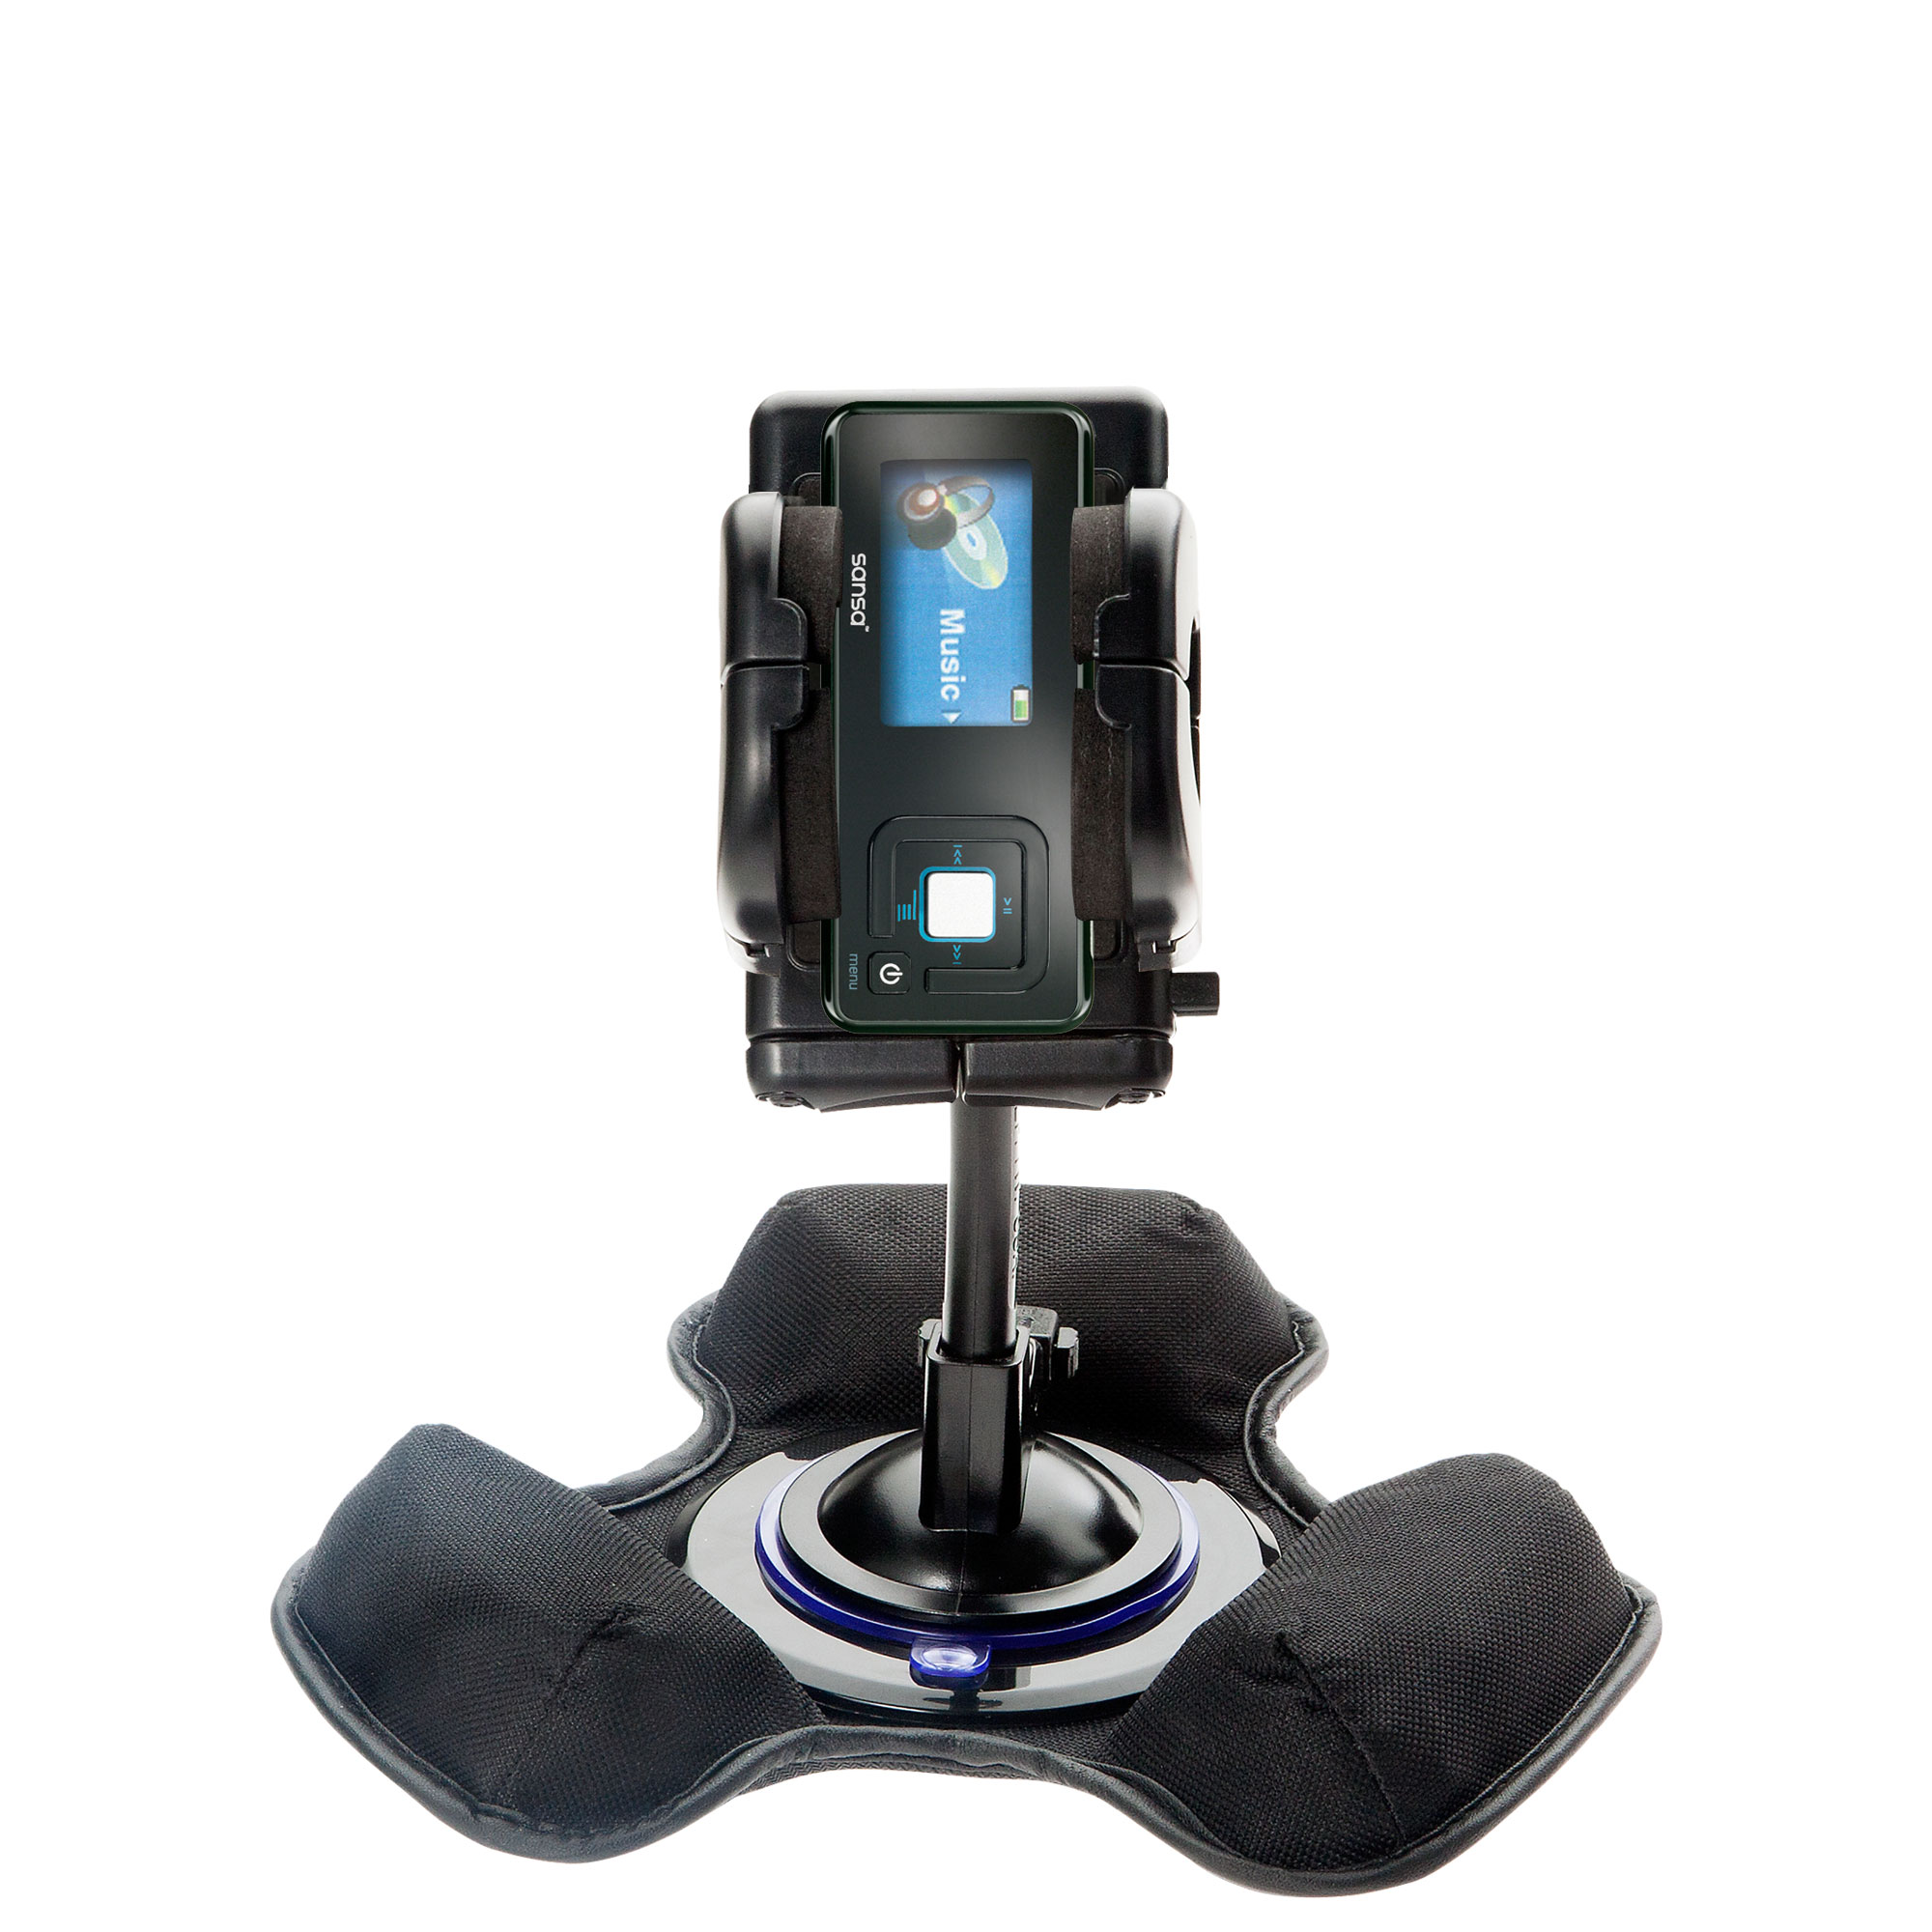 Car / Truck Vehicle Holder Mounting System for Sandisk Sansa c240 Includes Unique Flexible Windshield Suction and Universal Dashboard Mount Options